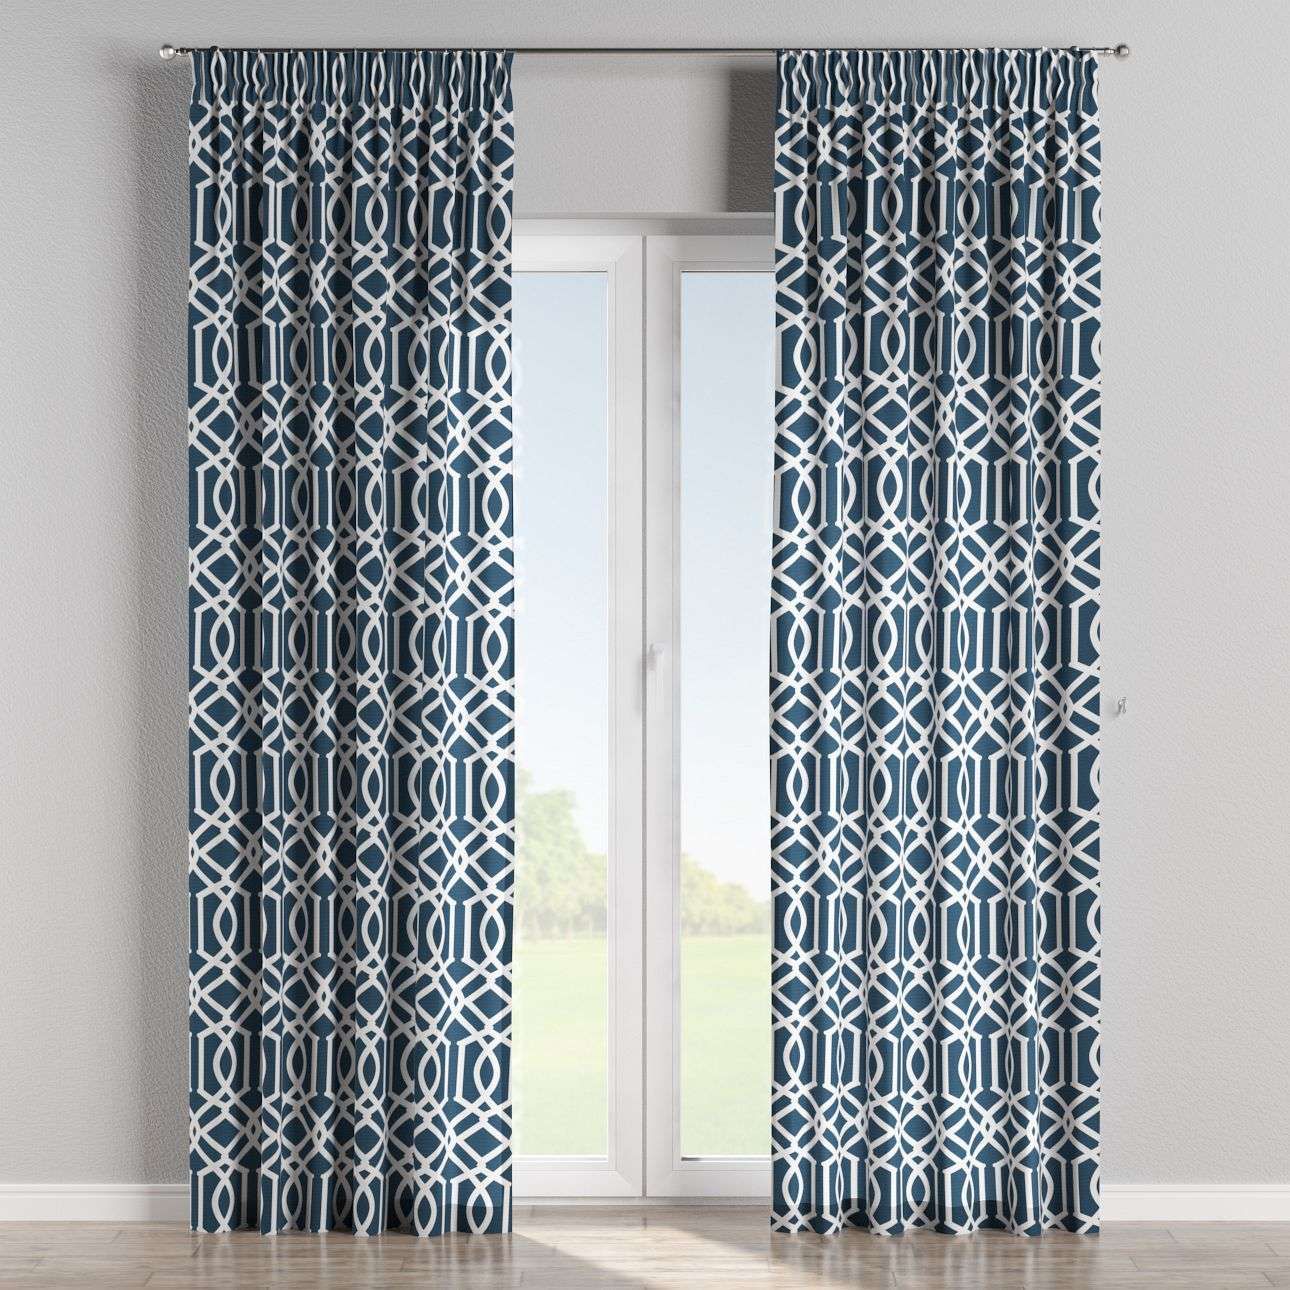 Pencil pleat curtains 130 × 260 cm (51 × 102 inch) in collection Comics/Geometrical, fabric: 135-10